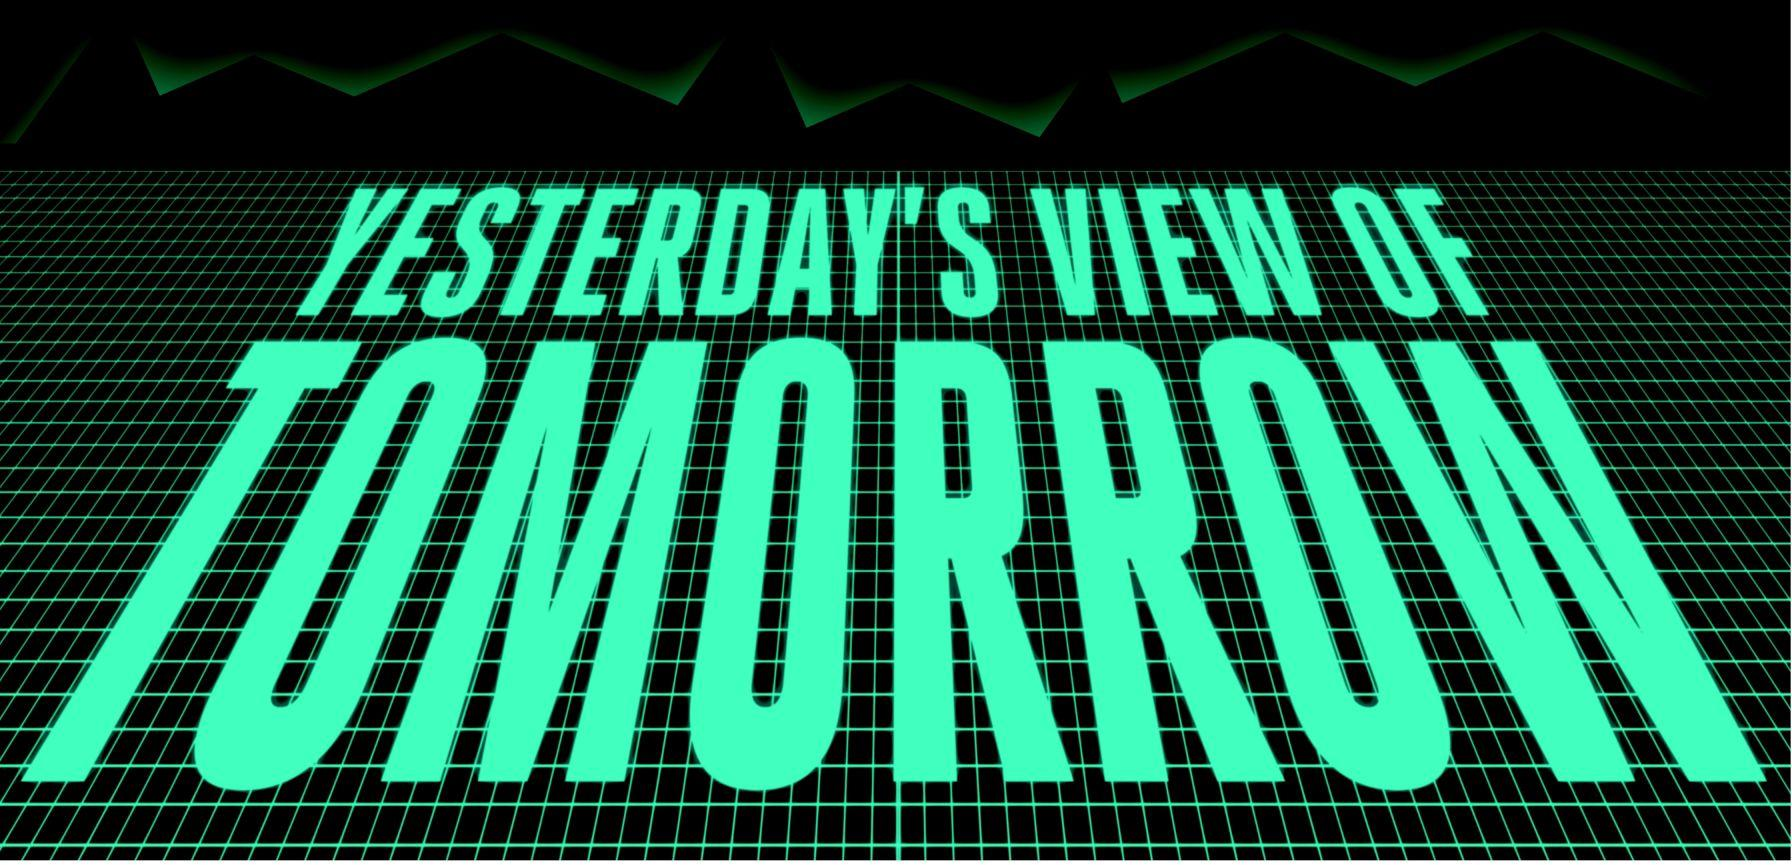 YESTERDAY'S VIEW OF TOMORROW